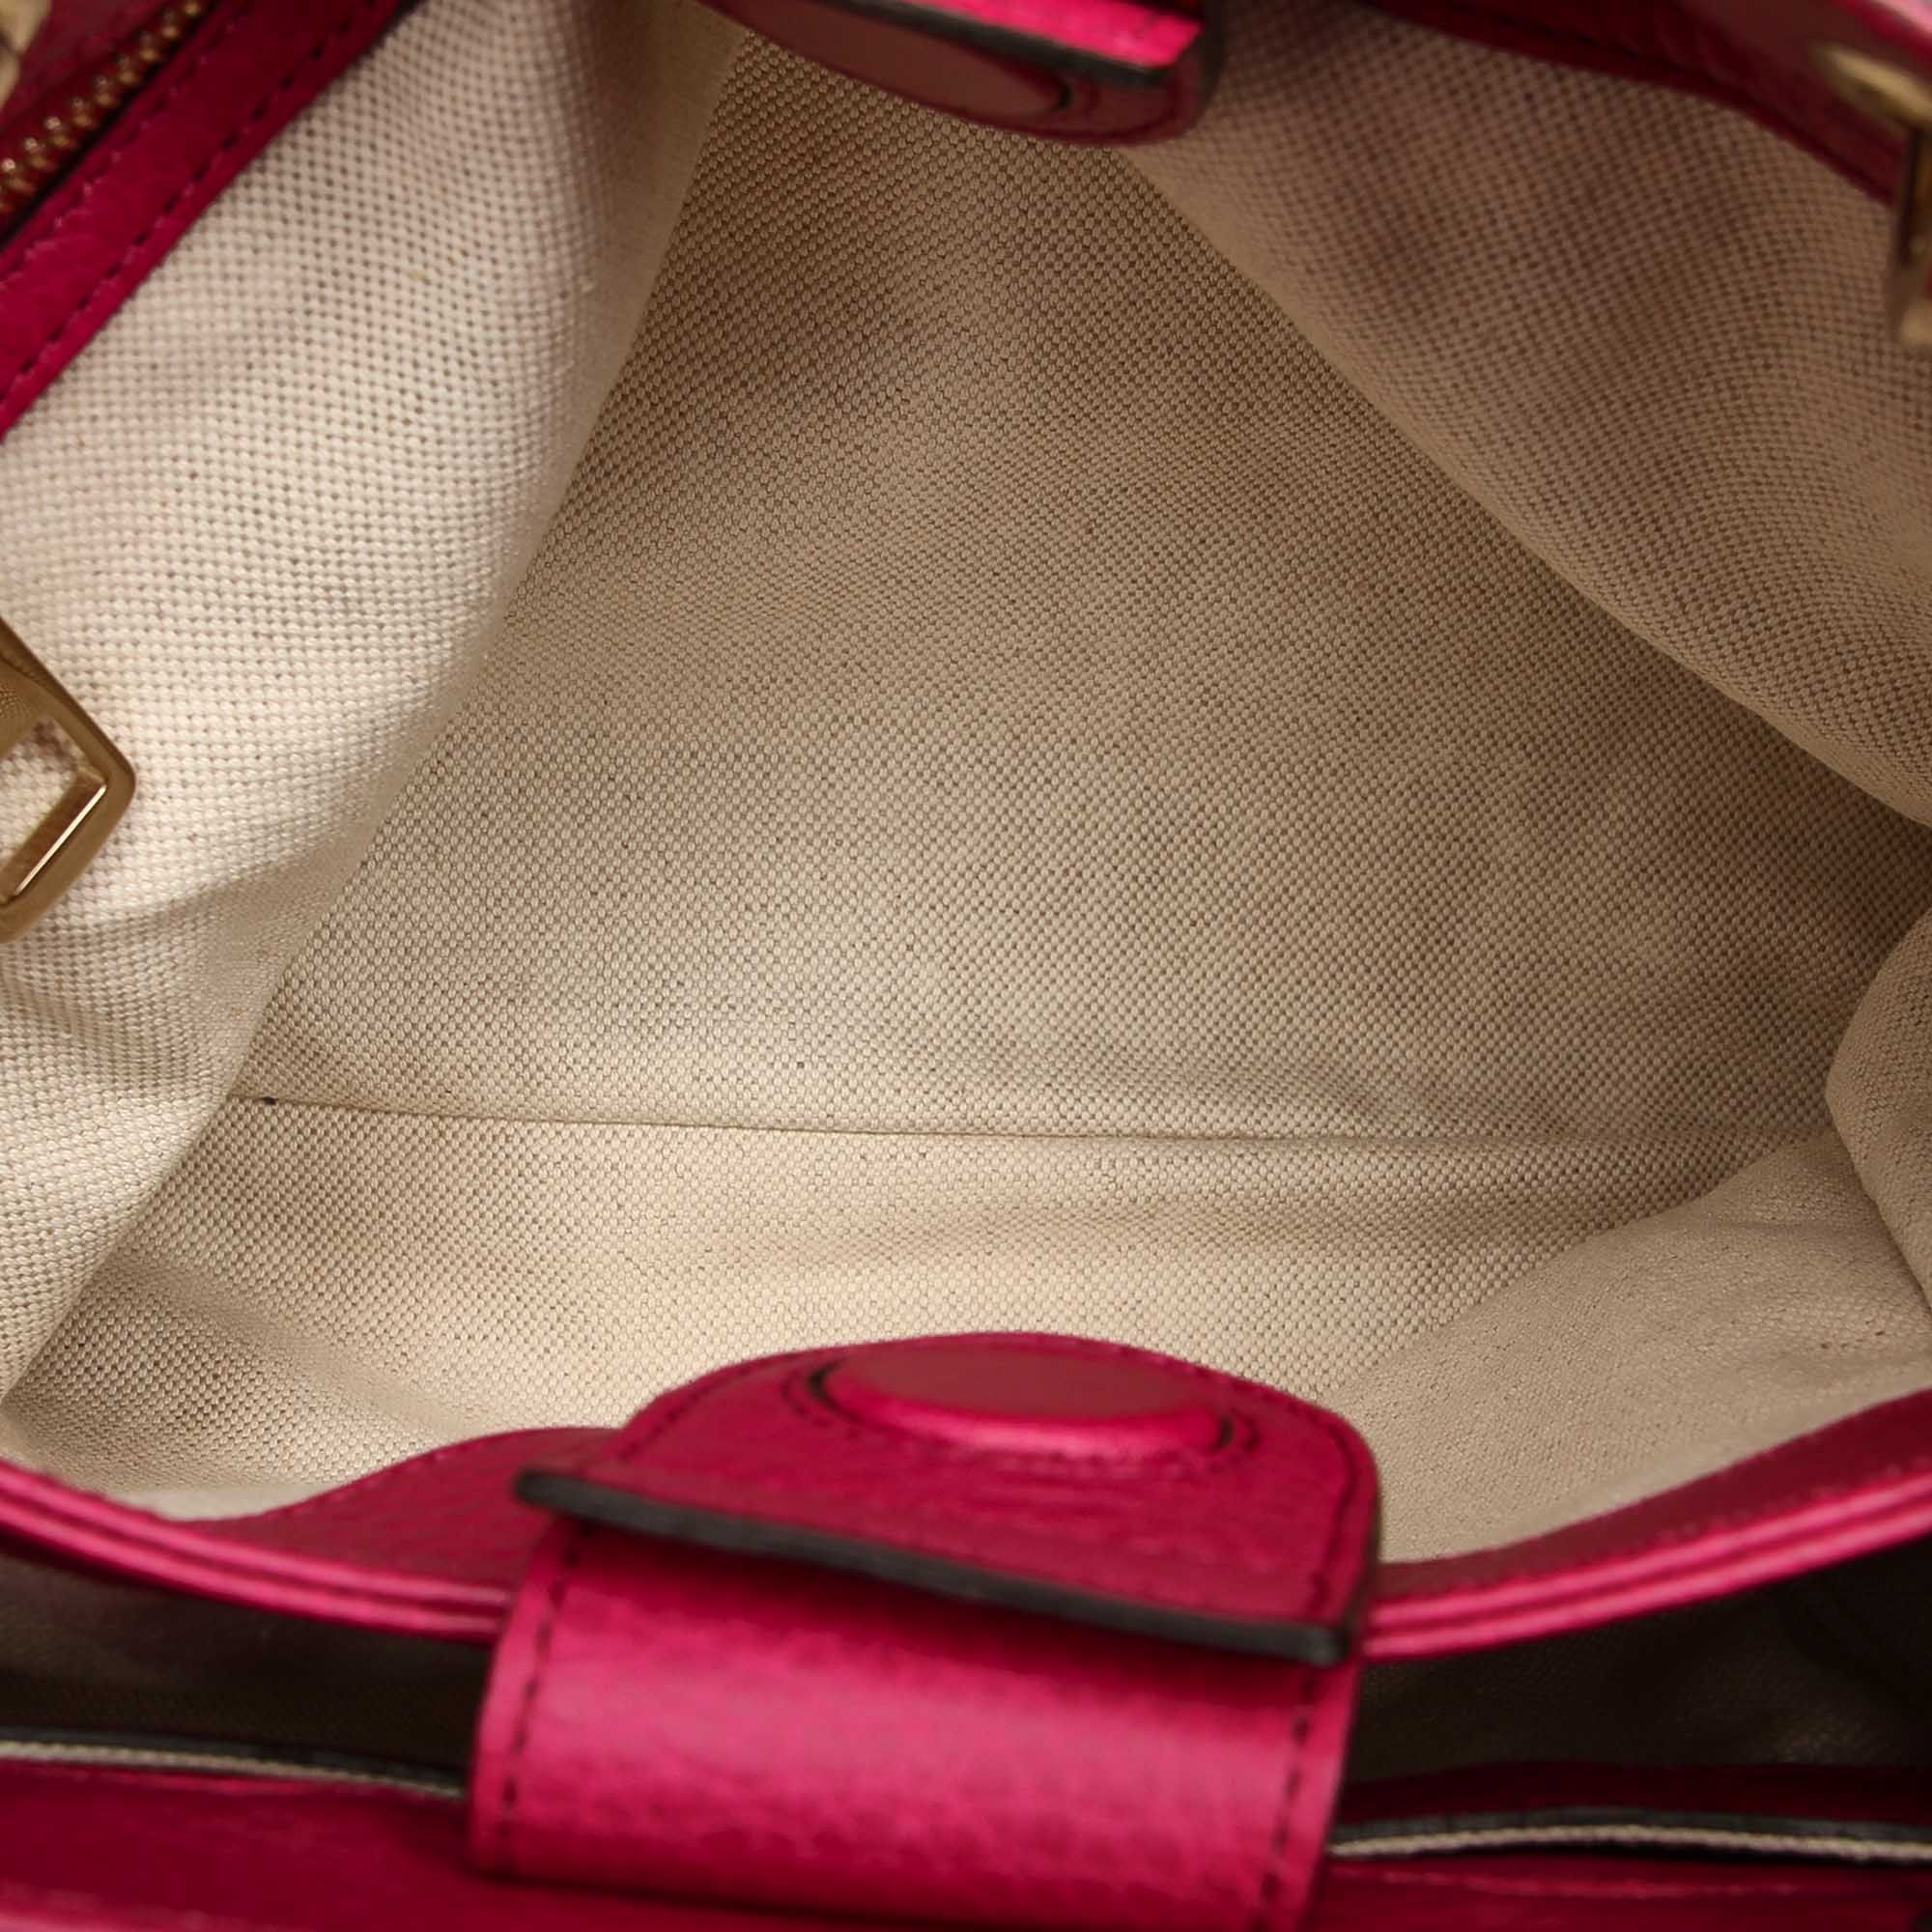 Vintage Gucci Bamboo Shopper Leather Satchel Pink